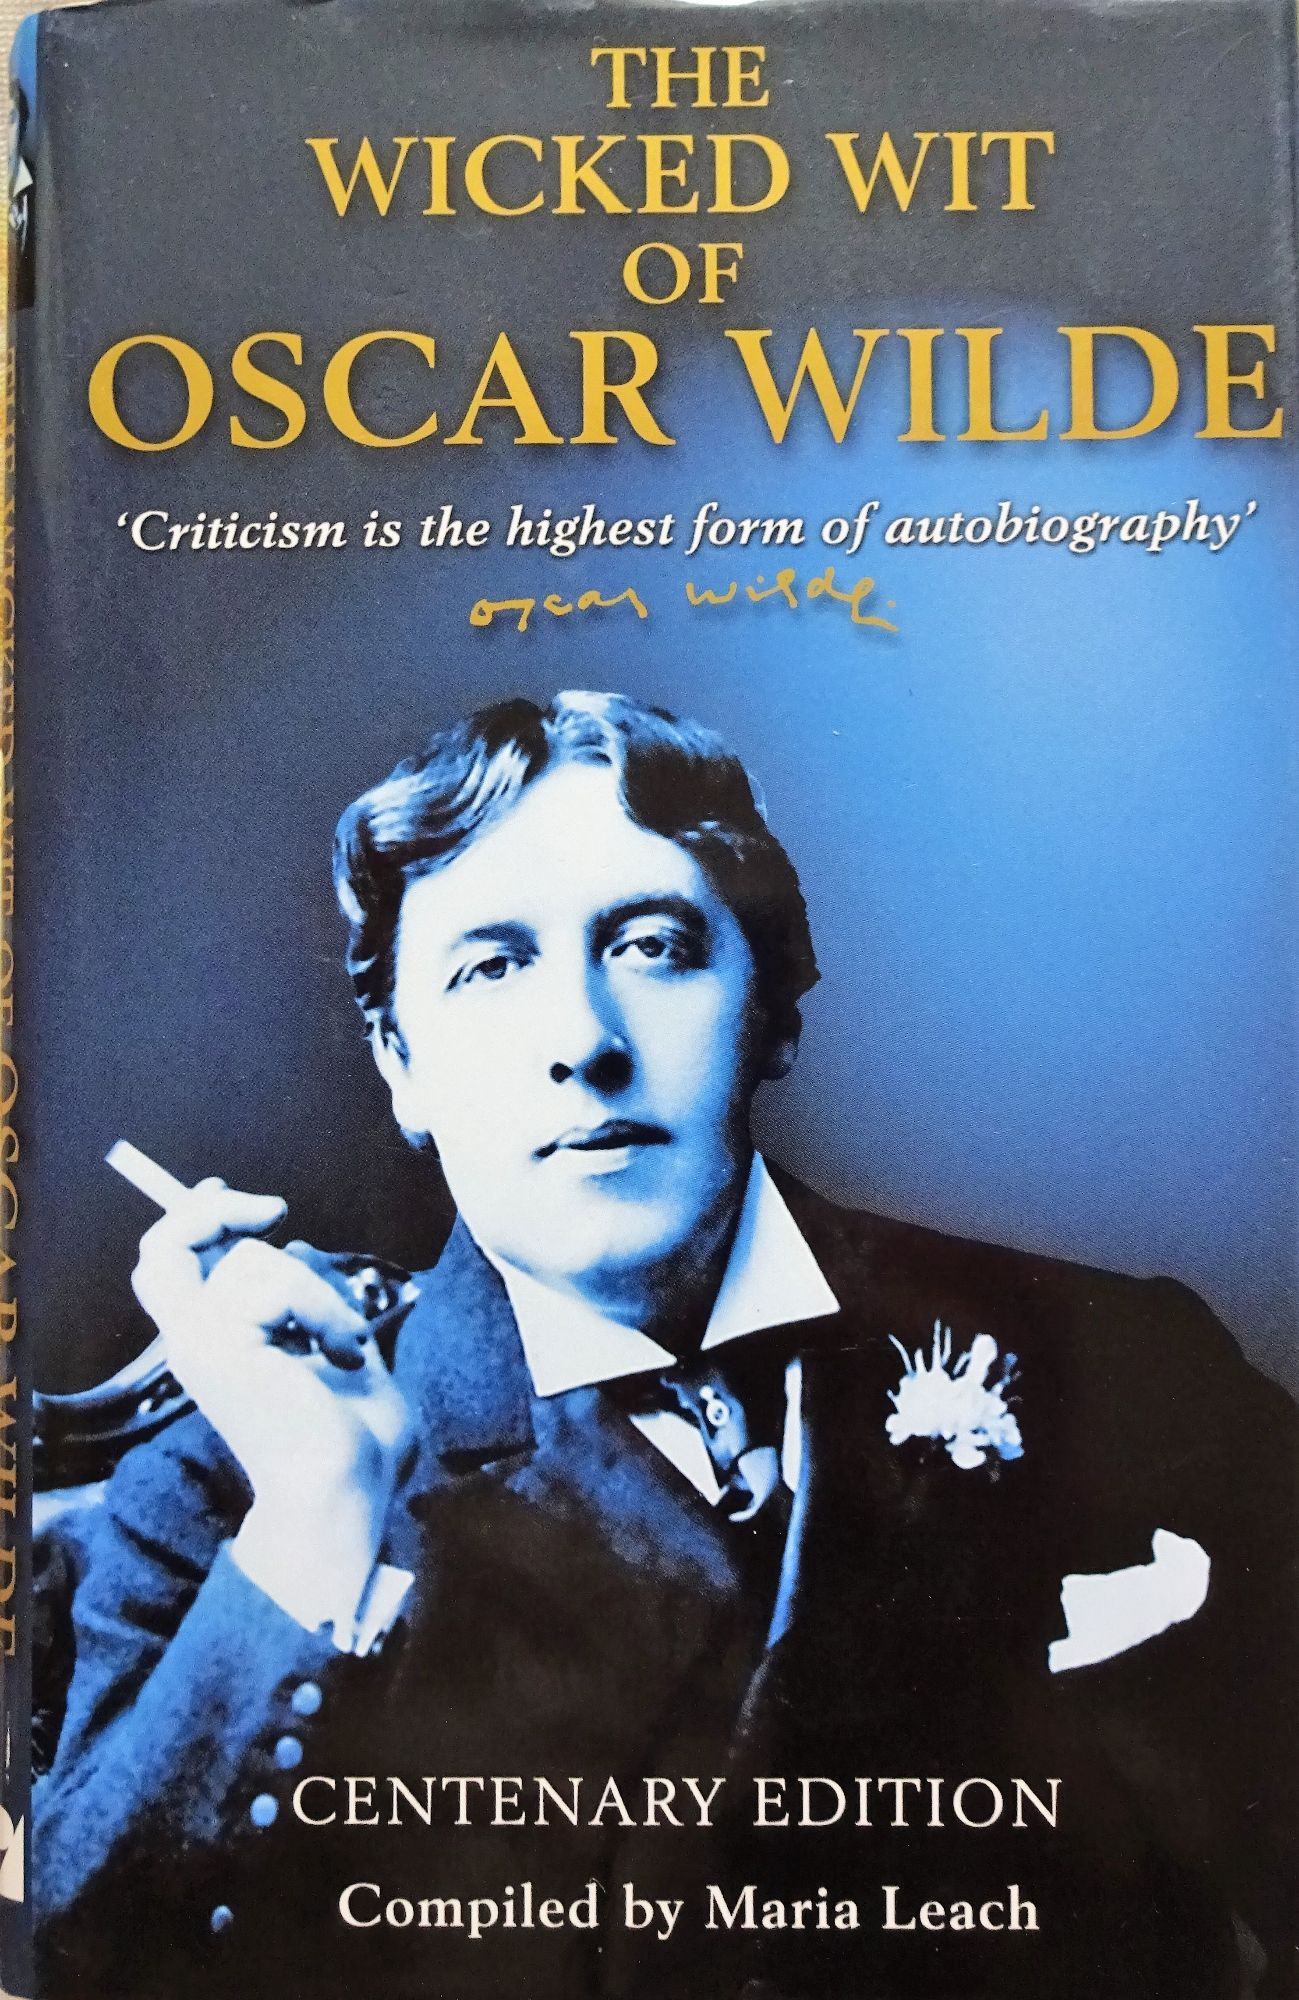 Oscar Wilde, The Wicked Wit of Oscar Wilde, Maria Leach, 2000. 1st Edition.